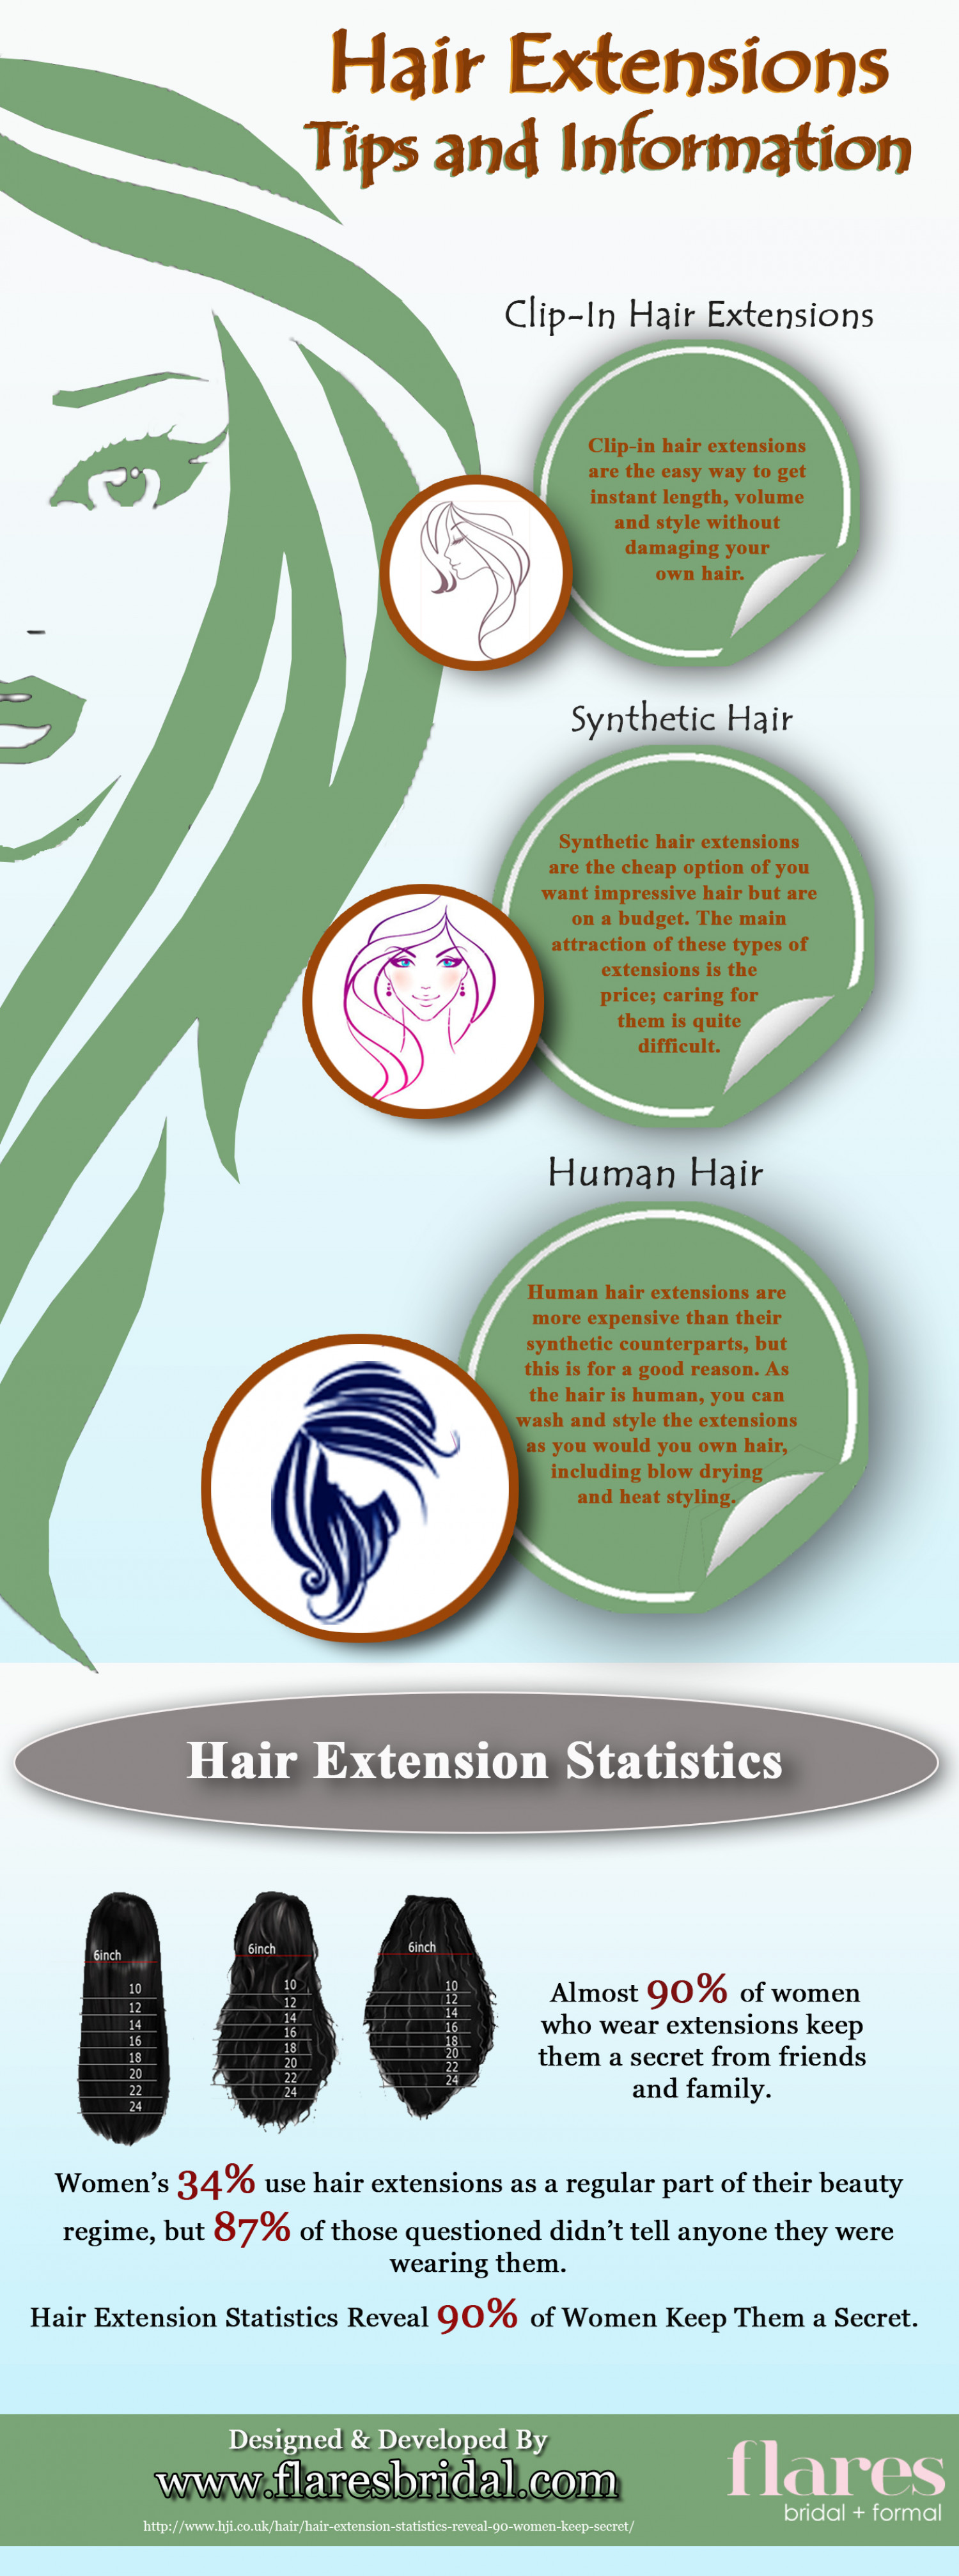 Hair Extensions Tips And Information Visual